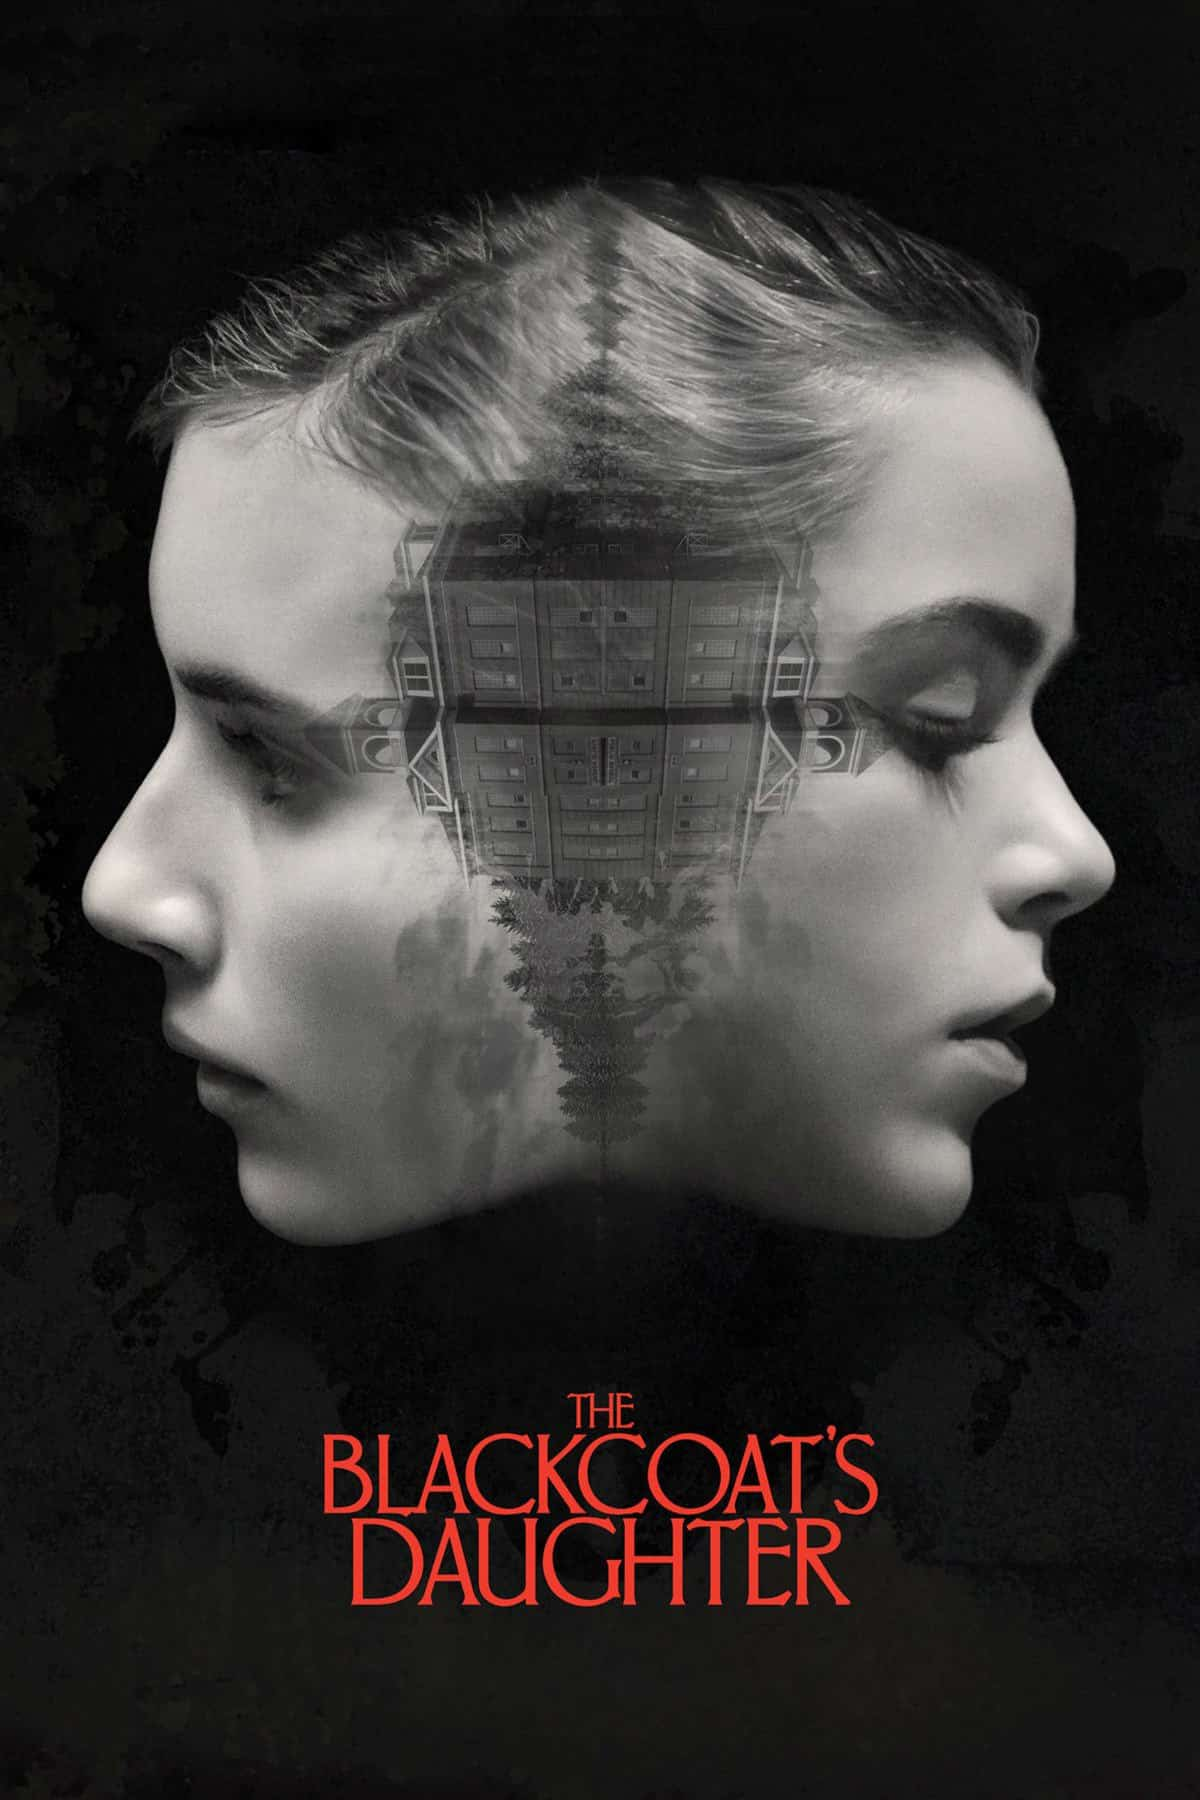 The Blackcoat's Daughter, 2015